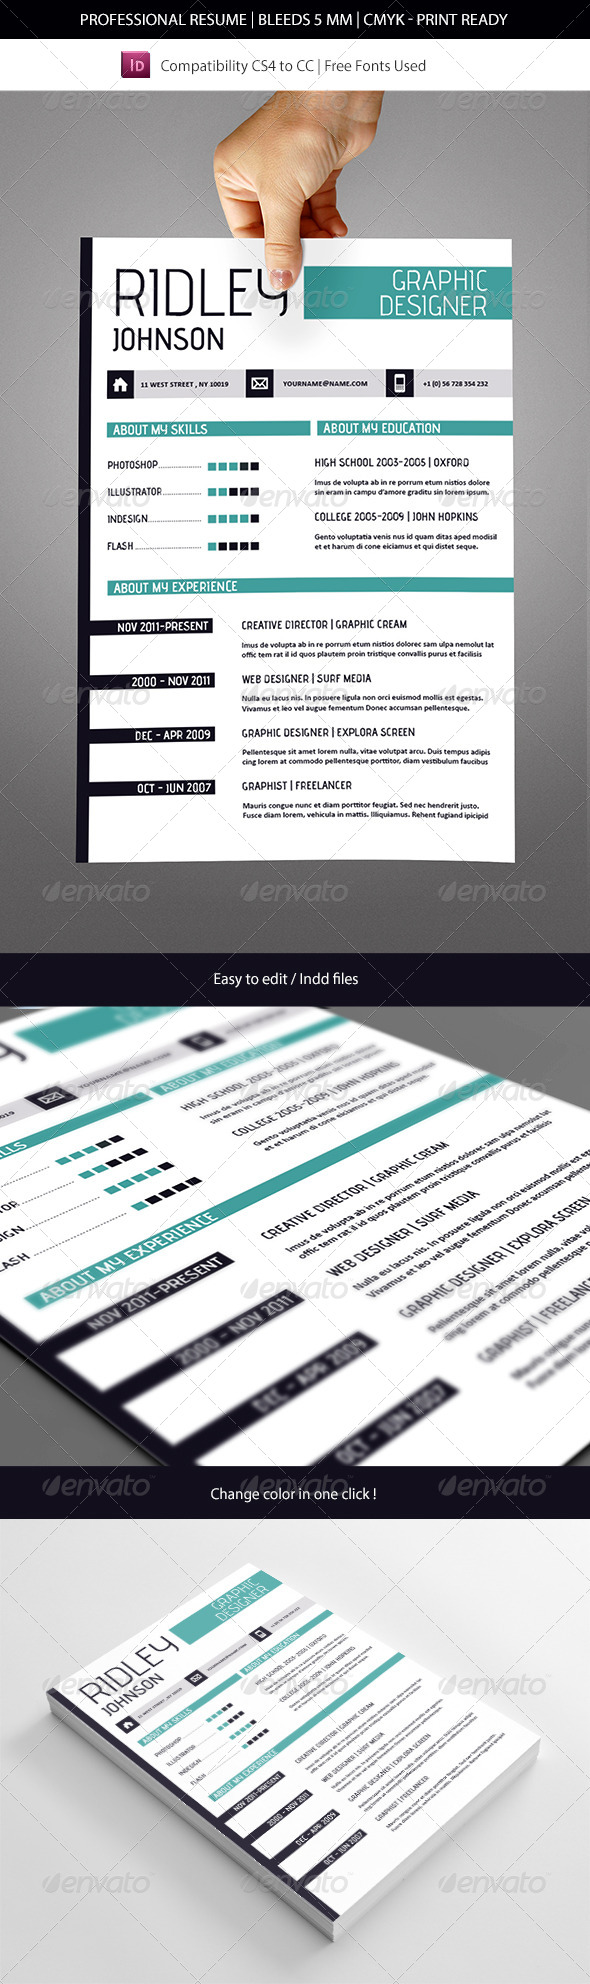 creative indesign resume template resumes download best gfx